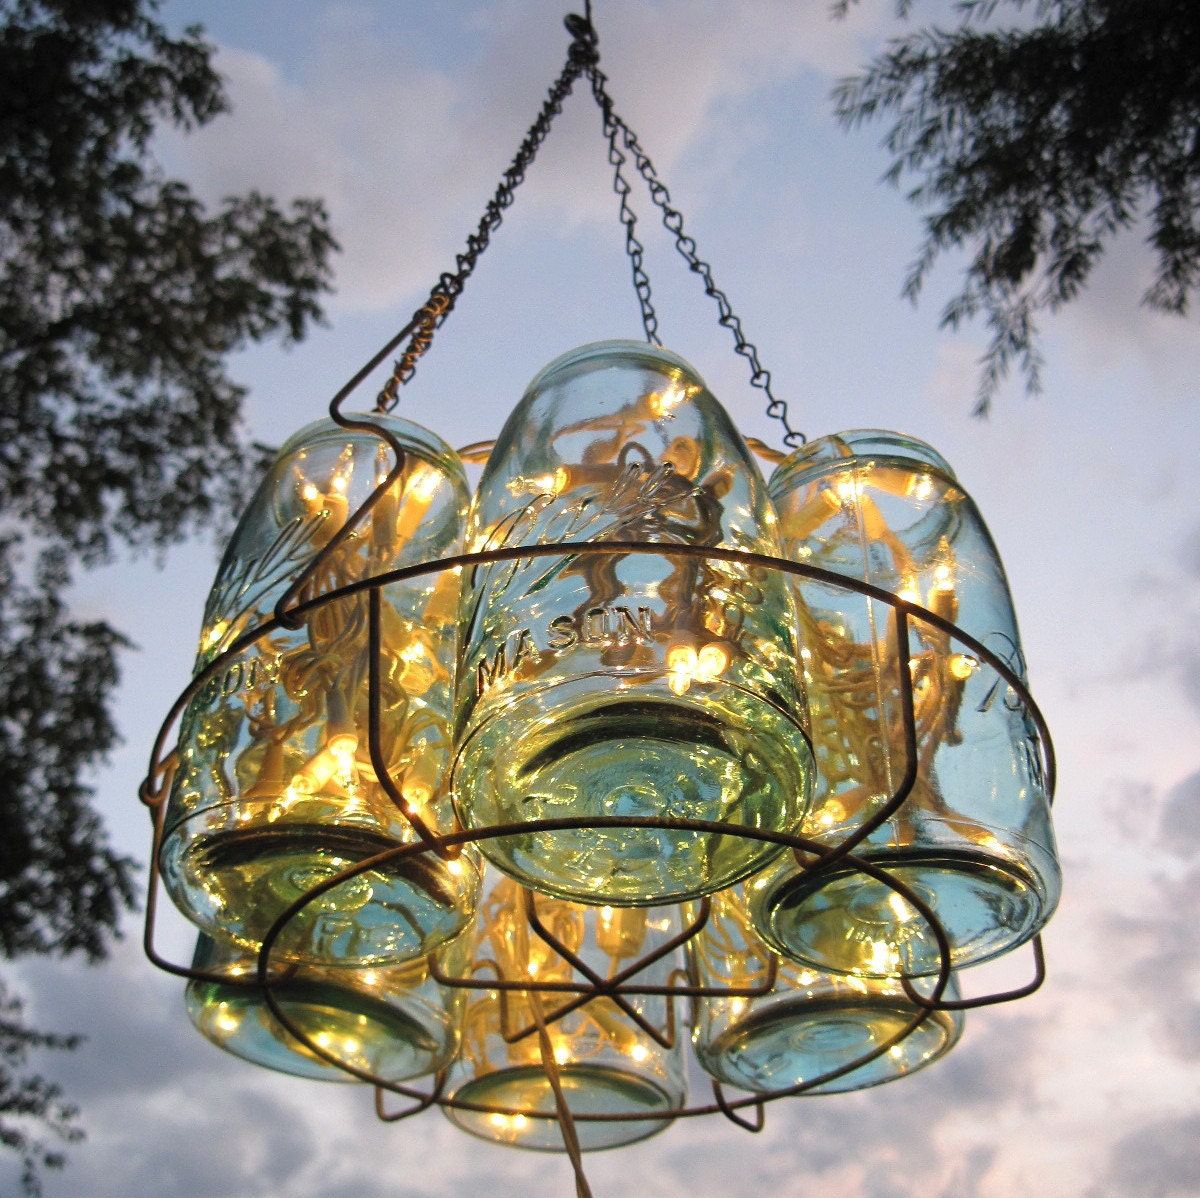 Brightening Up Your Spaces with the Latest in Lighting Trends